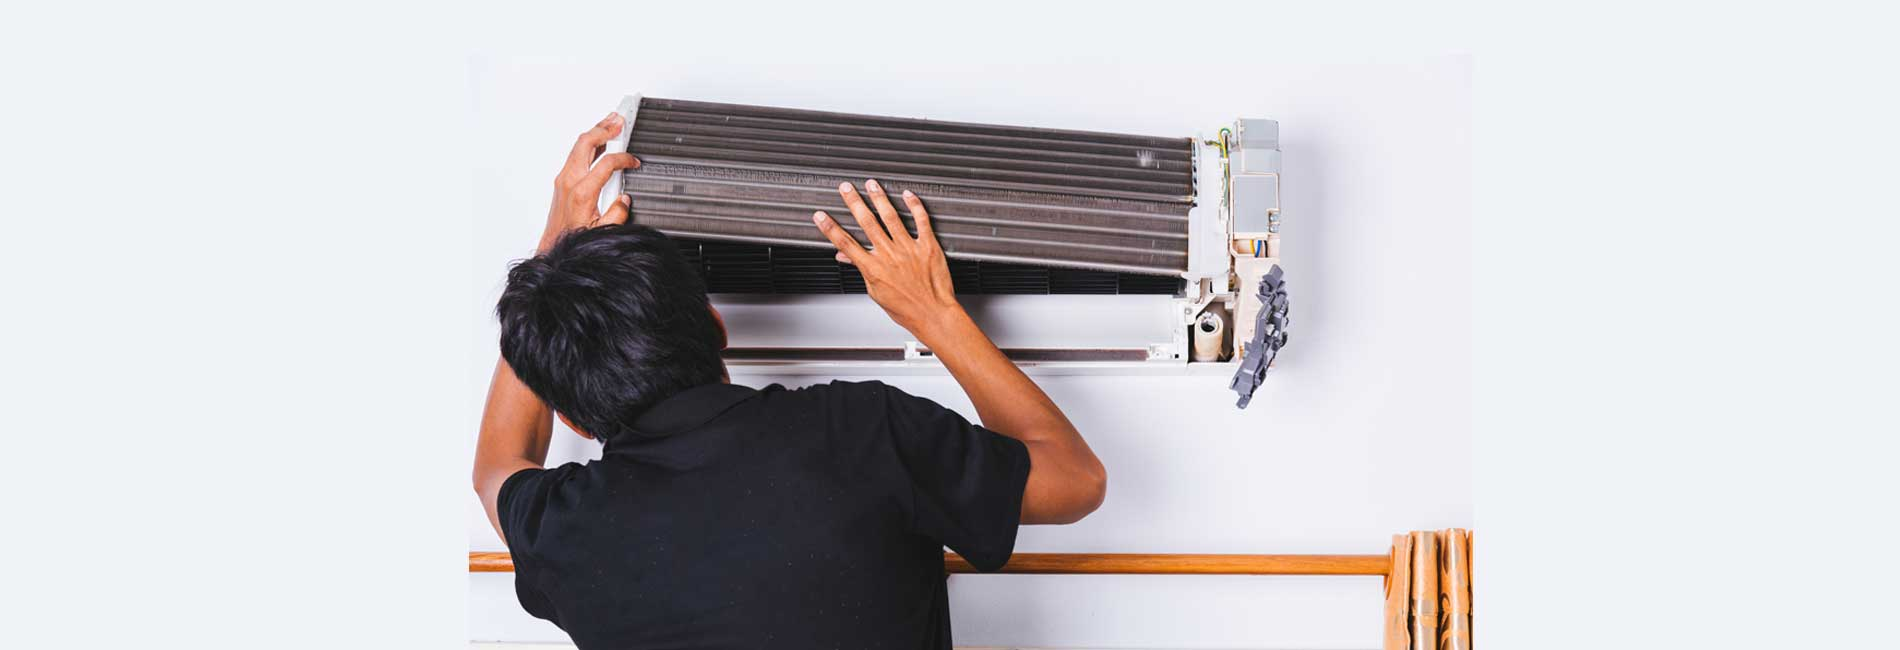 Bluestar AC Uninstallation in Kolapakkam